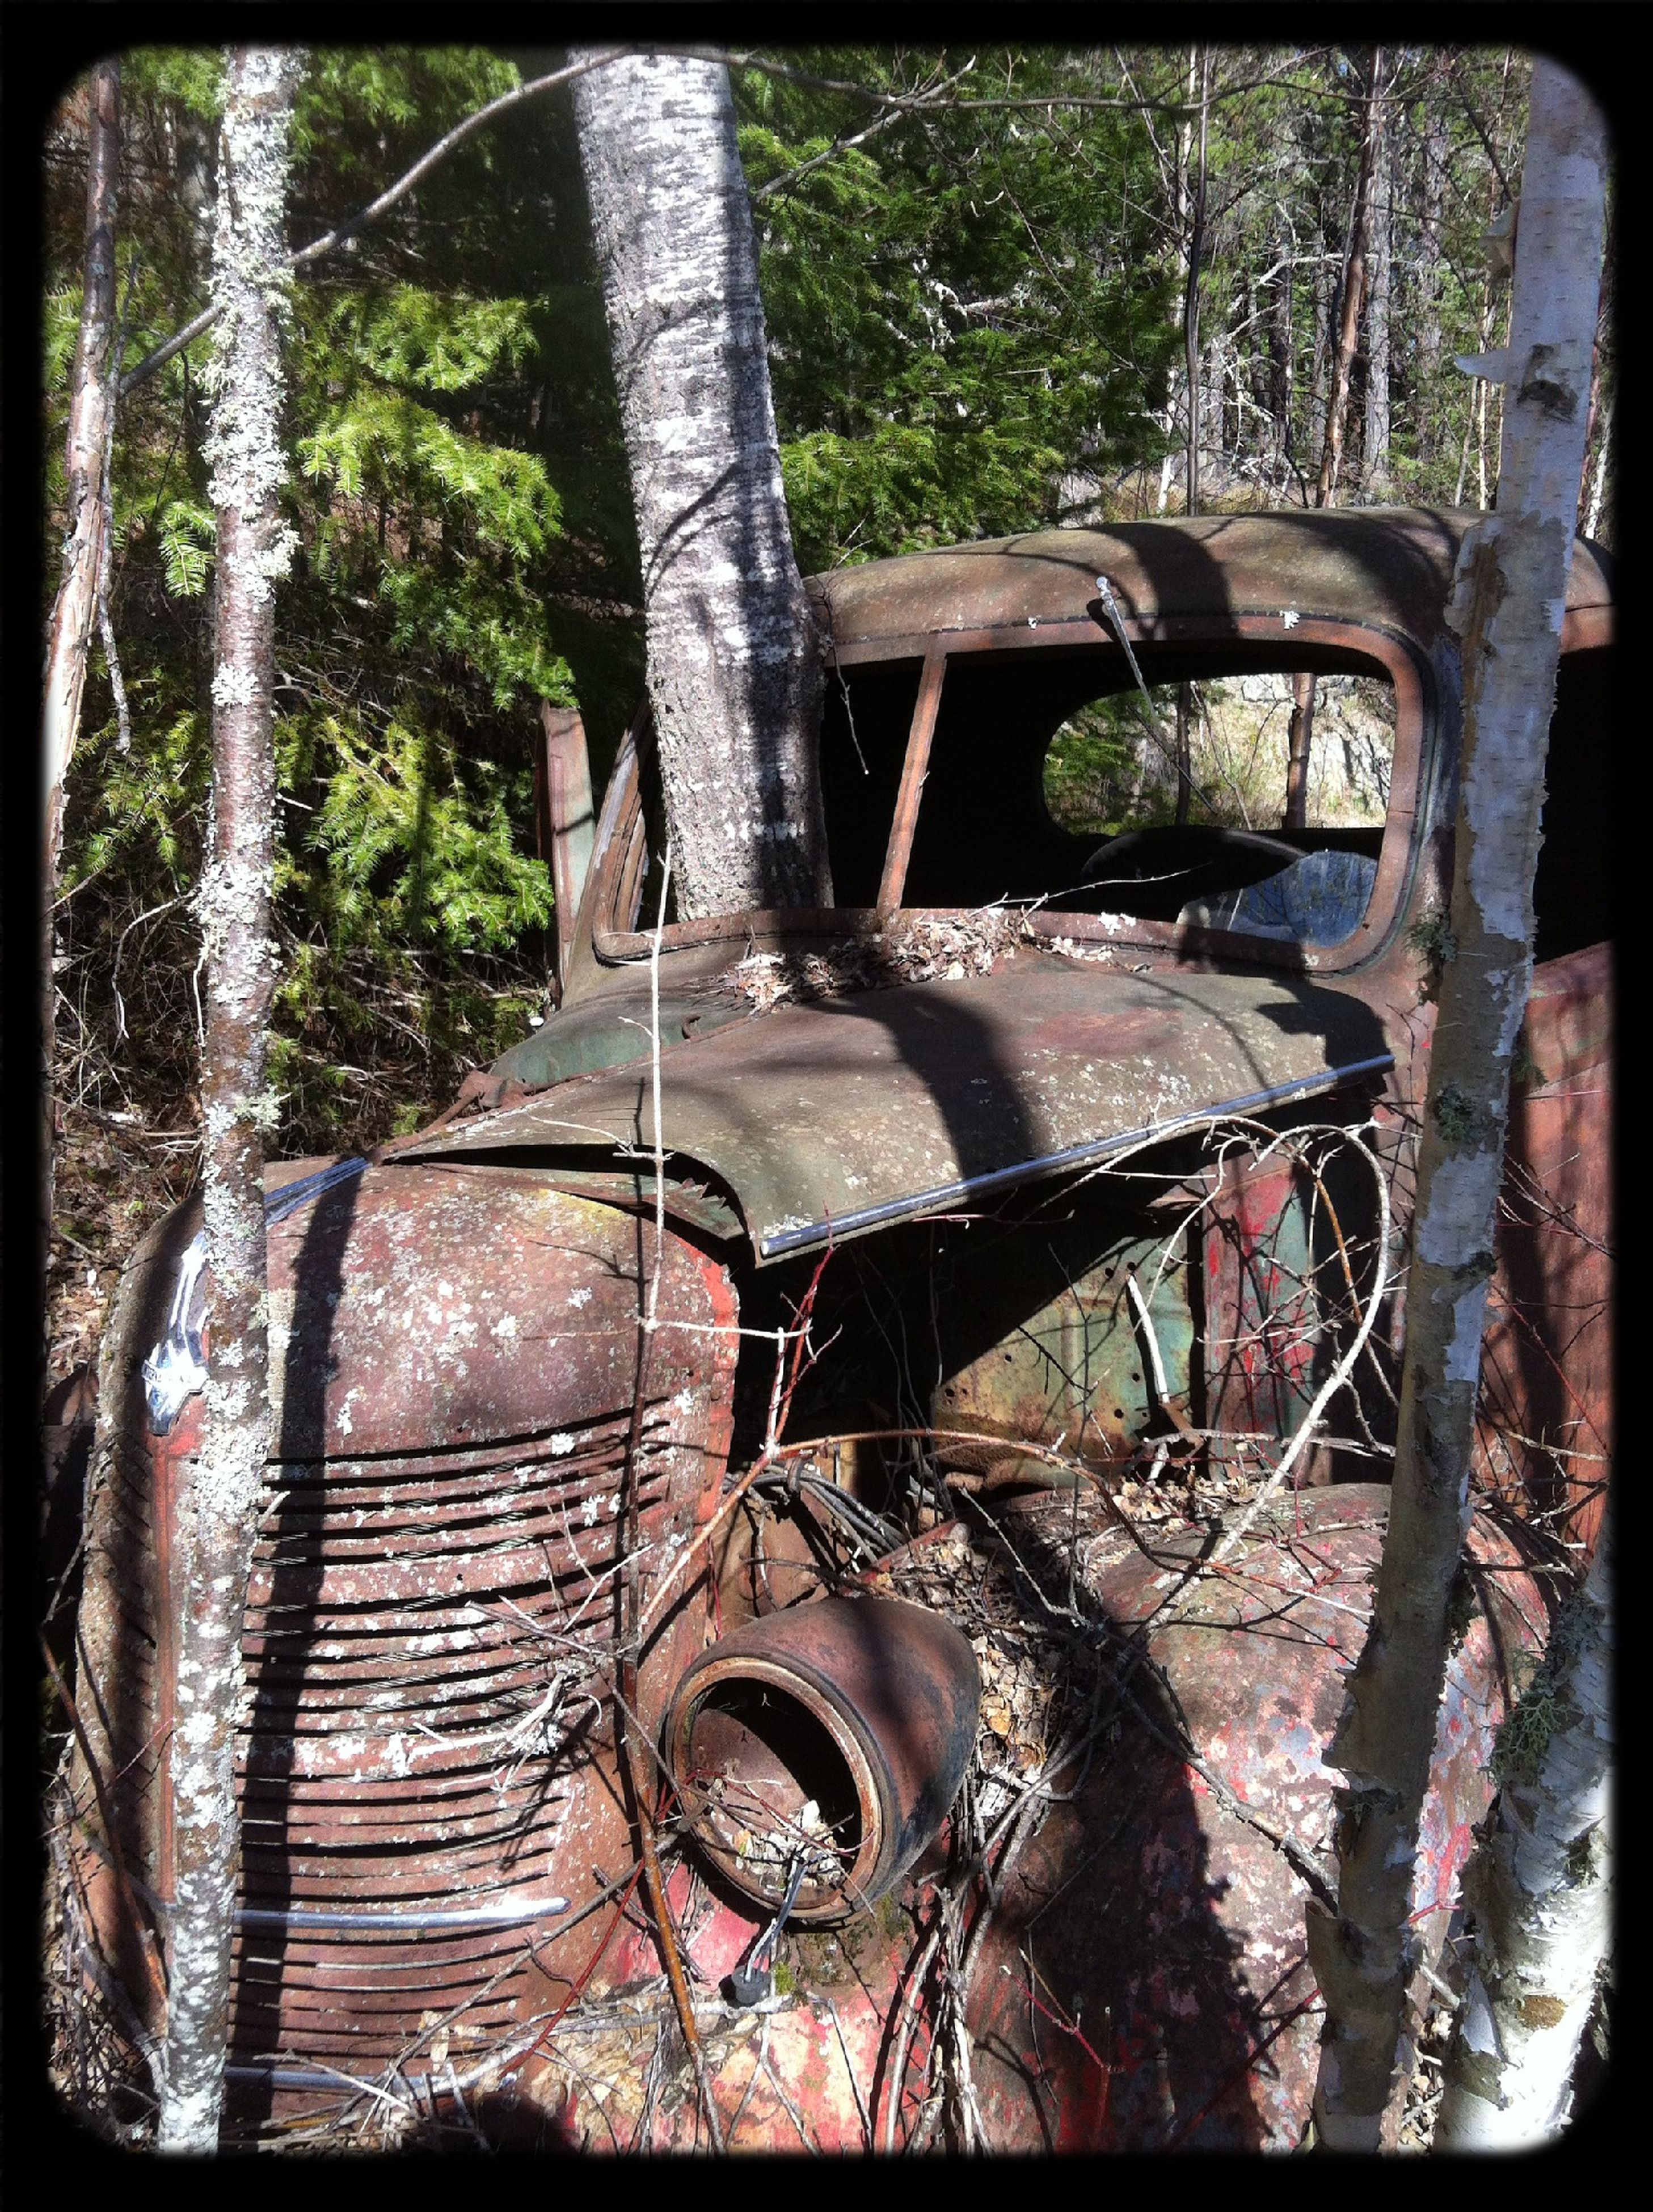 transfer print, transportation, mode of transport, auto post production filter, land vehicle, tree, abandoned, old, obsolete, damaged, deterioration, run-down, stationary, wheel, day, sunlight, rusty, bicycle, car, outdoors